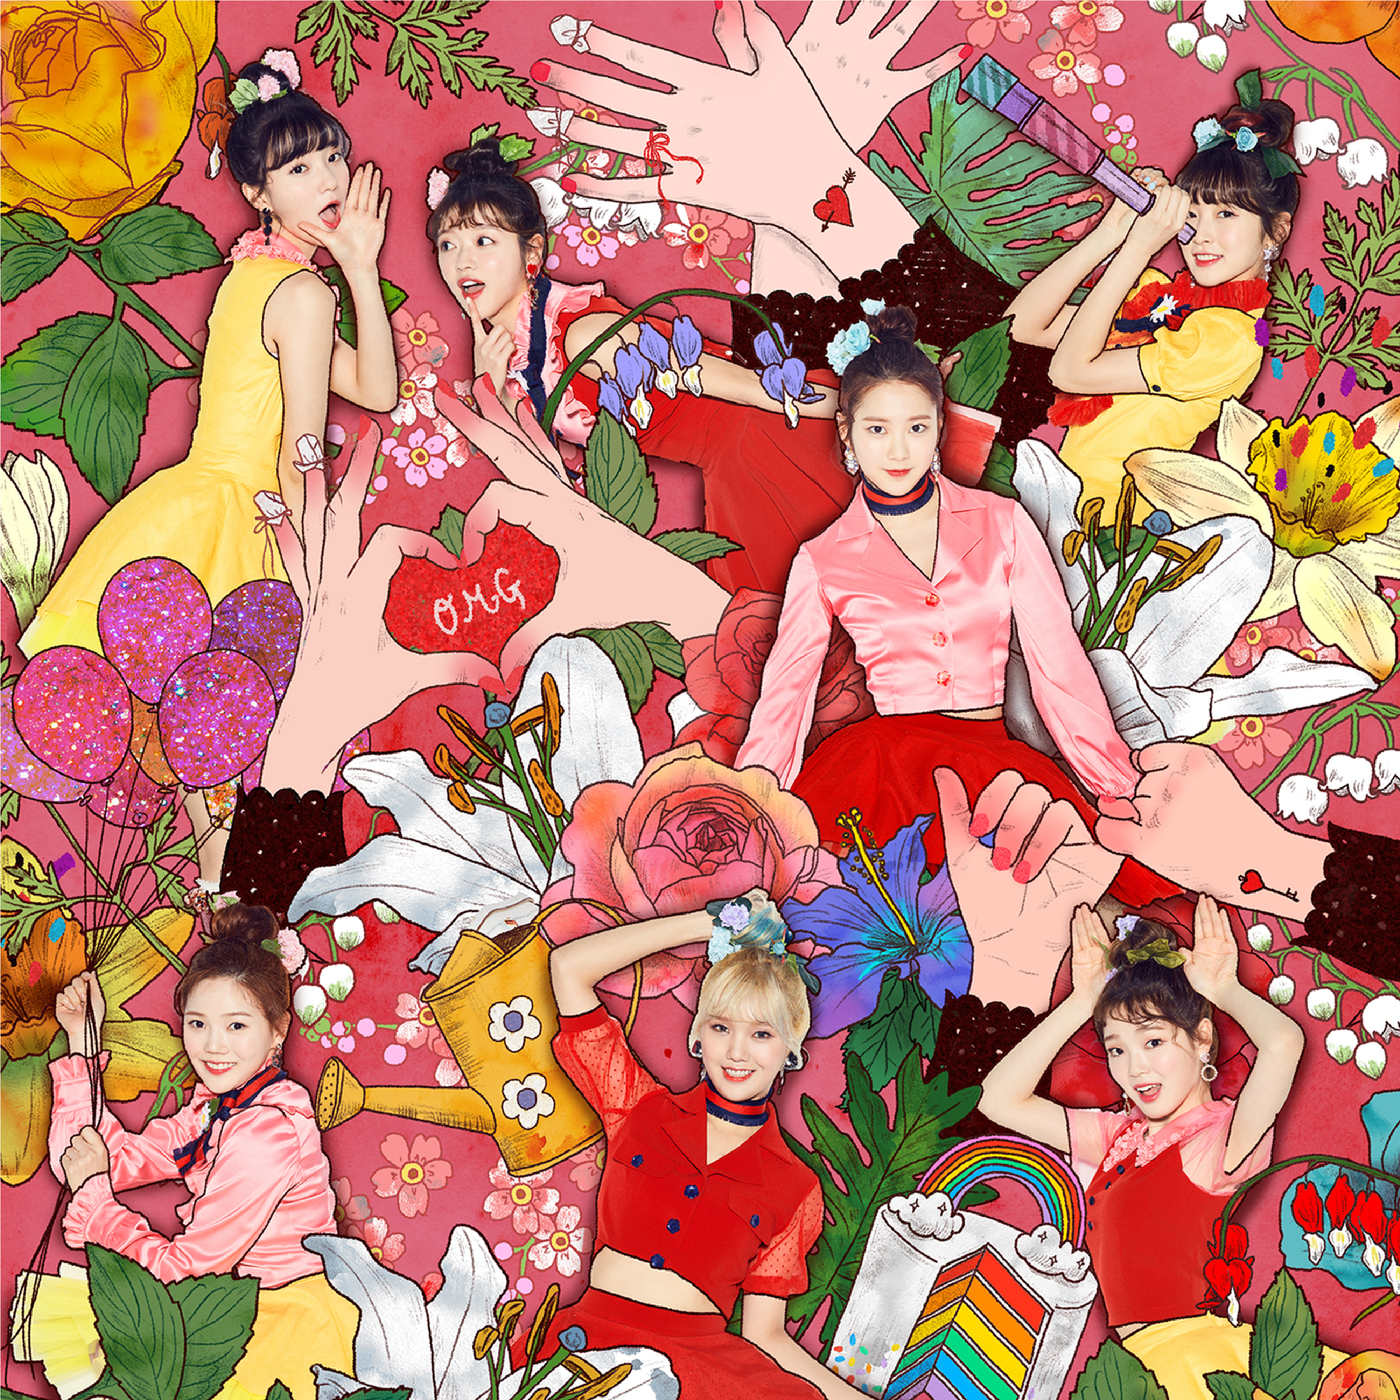 COLORING BOOK - OH MY GIRL